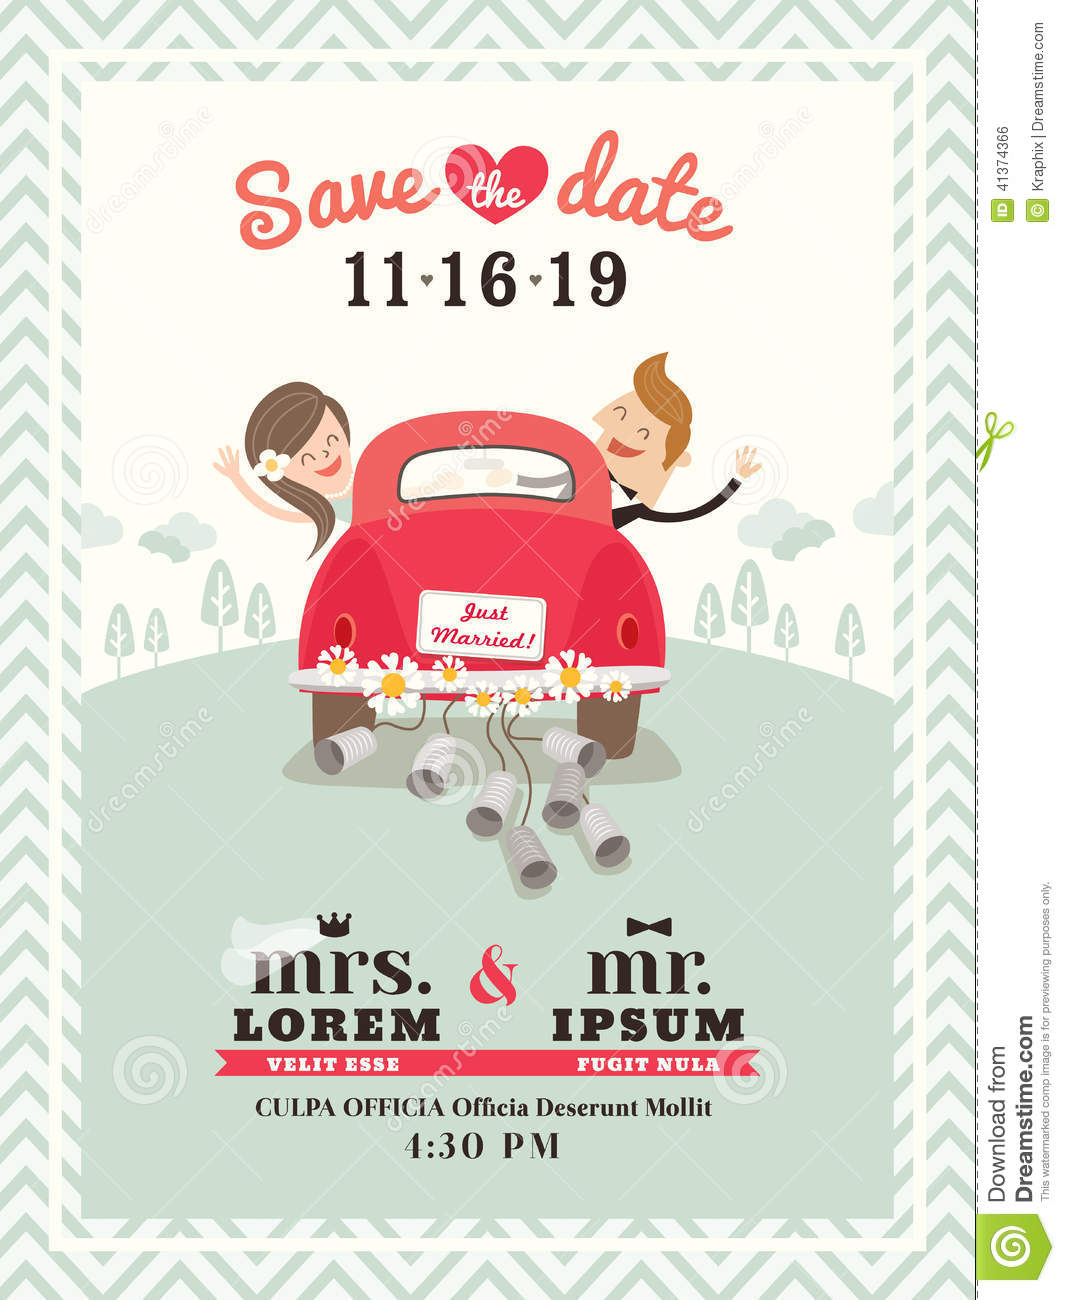 Cute Married Couple Hd Wallpapers Just Married Car Wedding Invitation Design Stock Vector